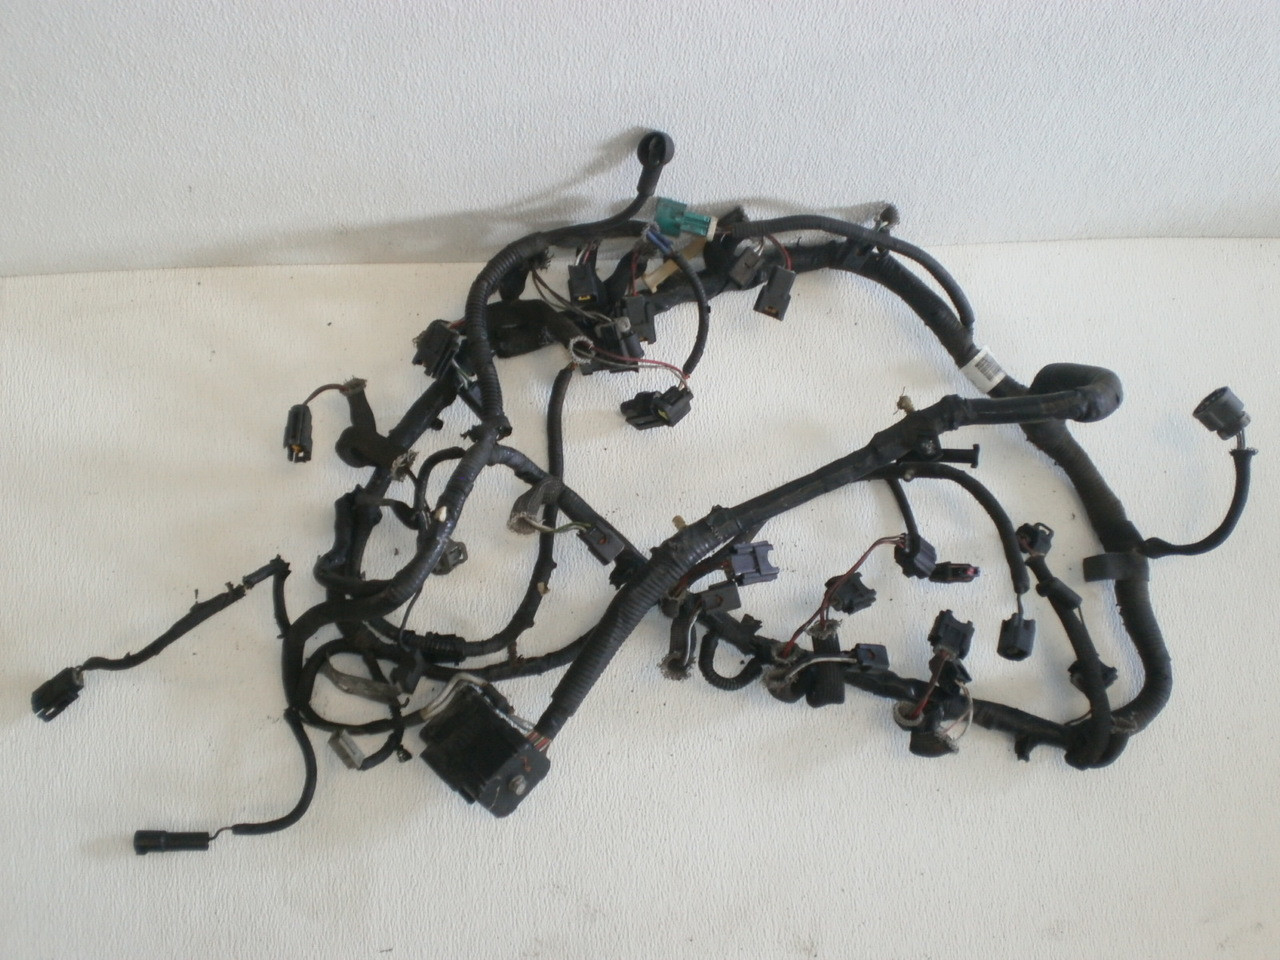 1999 2001 ford mustang 4 6 sohc engine fuel injection wire harness loom xr33 9d930 larger more photos [ 1280 x 960 Pixel ]